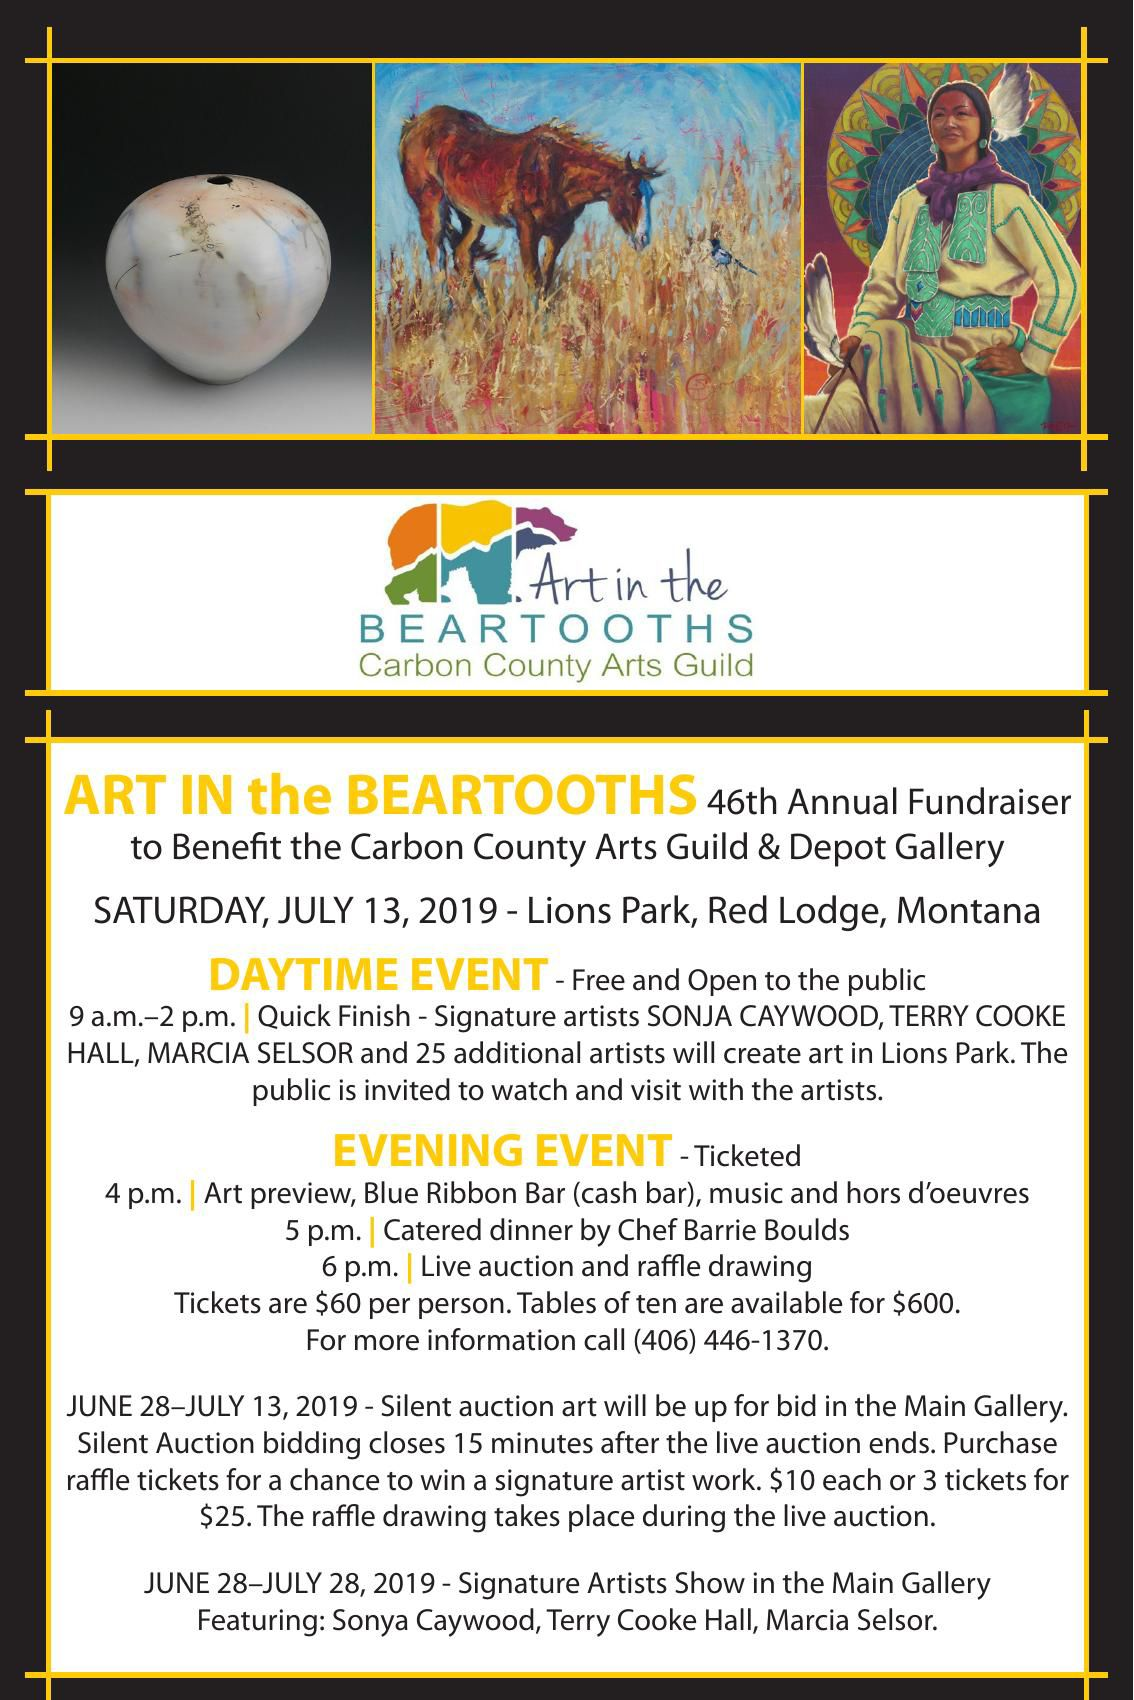 009572_carbon_county_arts_guild_art_in_the_beartooths_entertainment